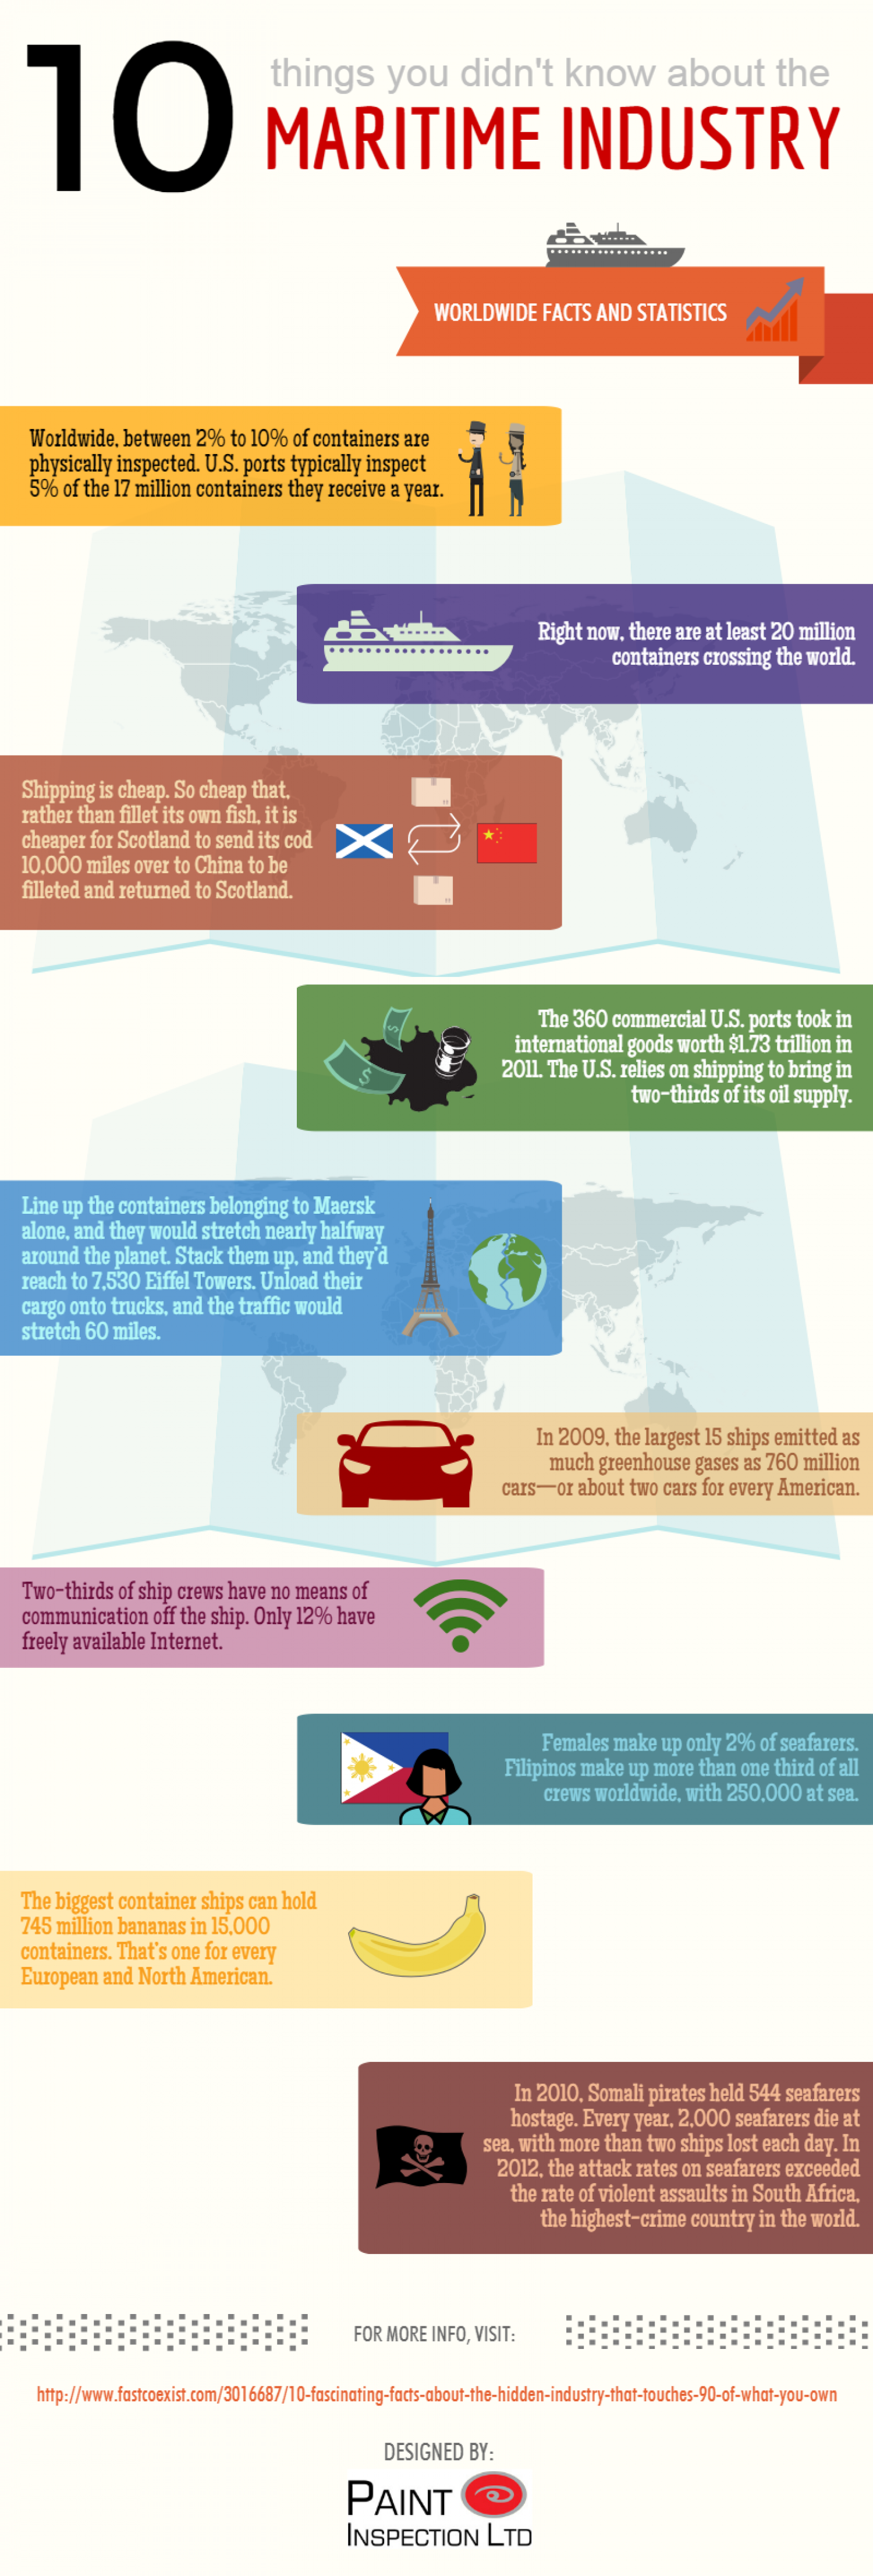 10 Things You Didn't Know About The Maritime Industry Infographic